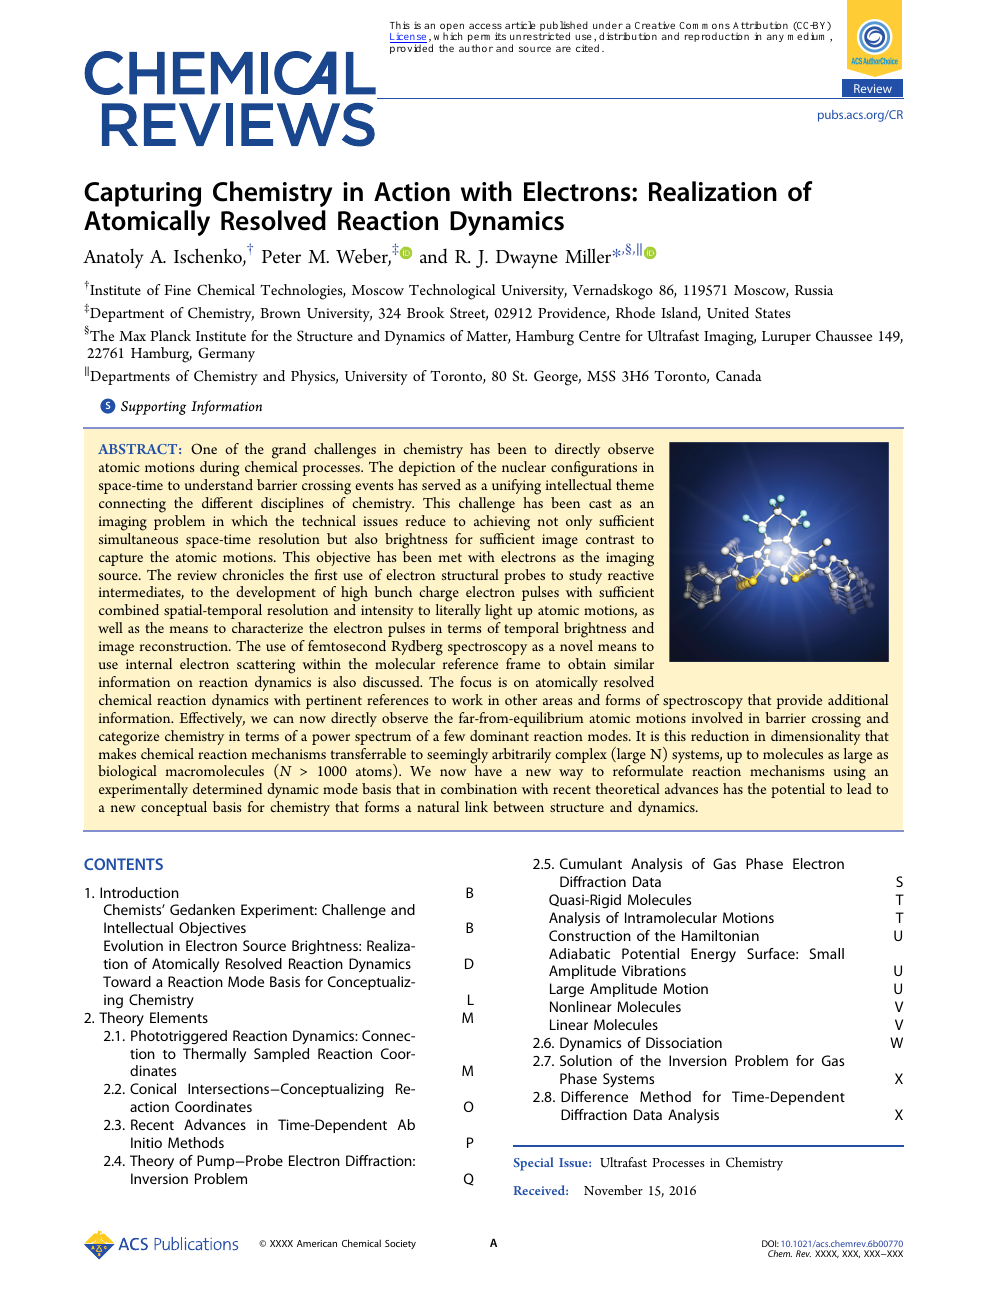 A Surprising Family Legacy Molecular >> Capturing Chemistry In Action With Electrons Realization Of